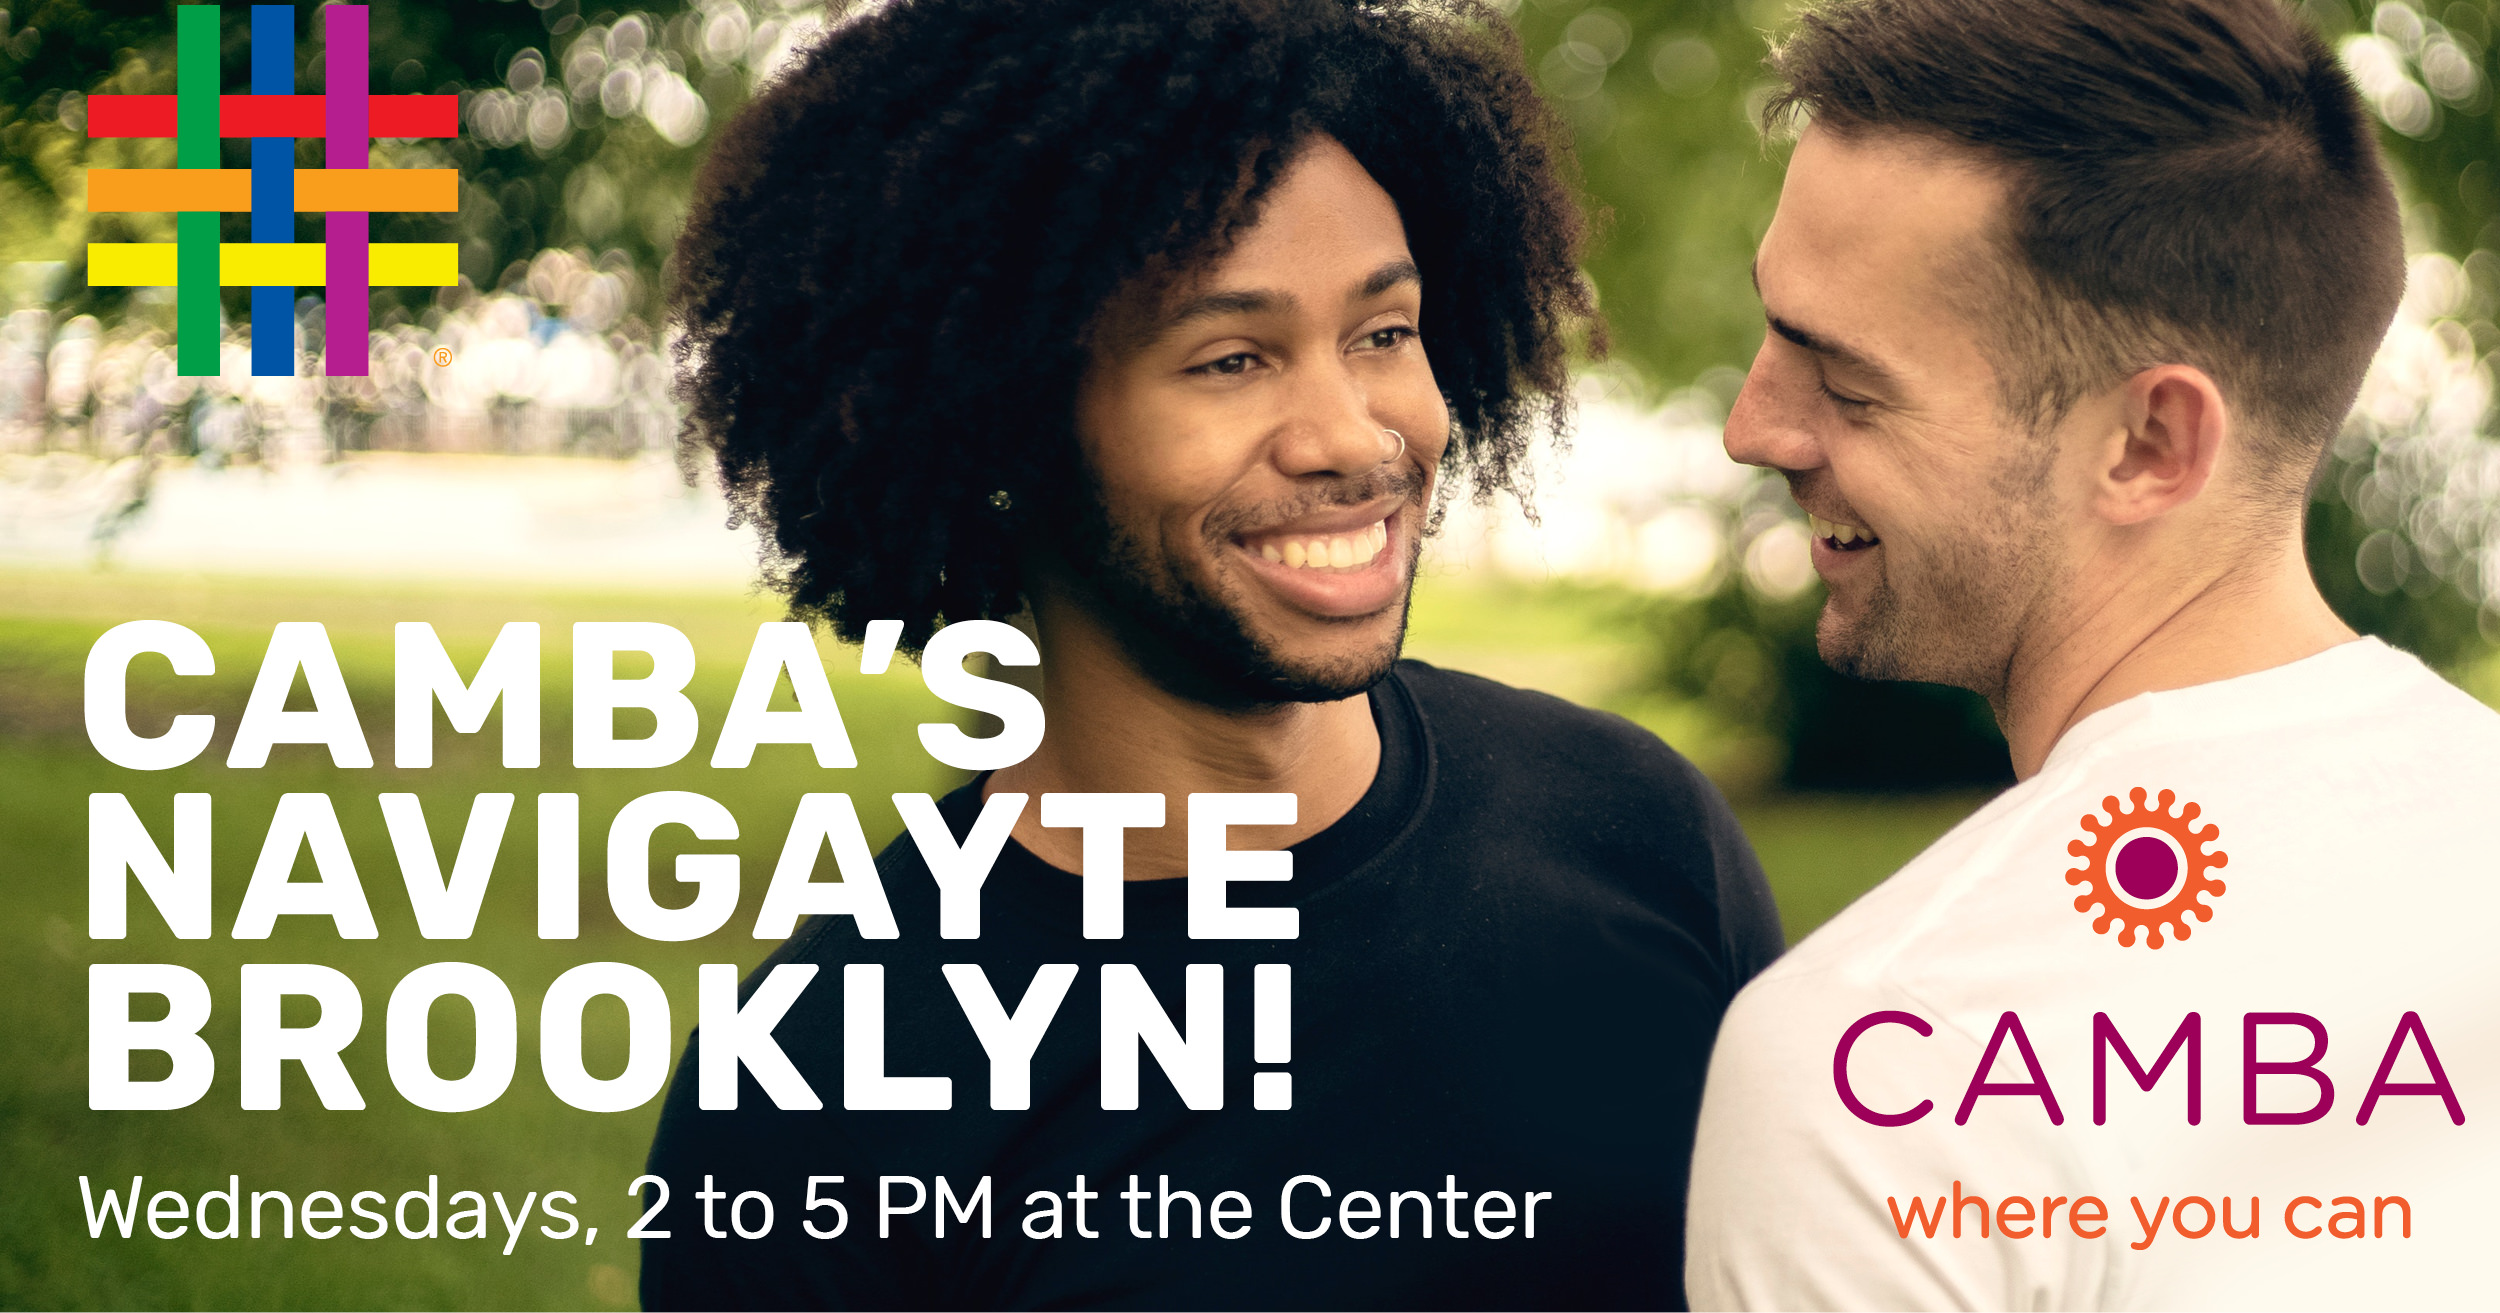 CAMBA's NAVIGAYTE BROOKLYN! at Brooklyn Community Pride Center